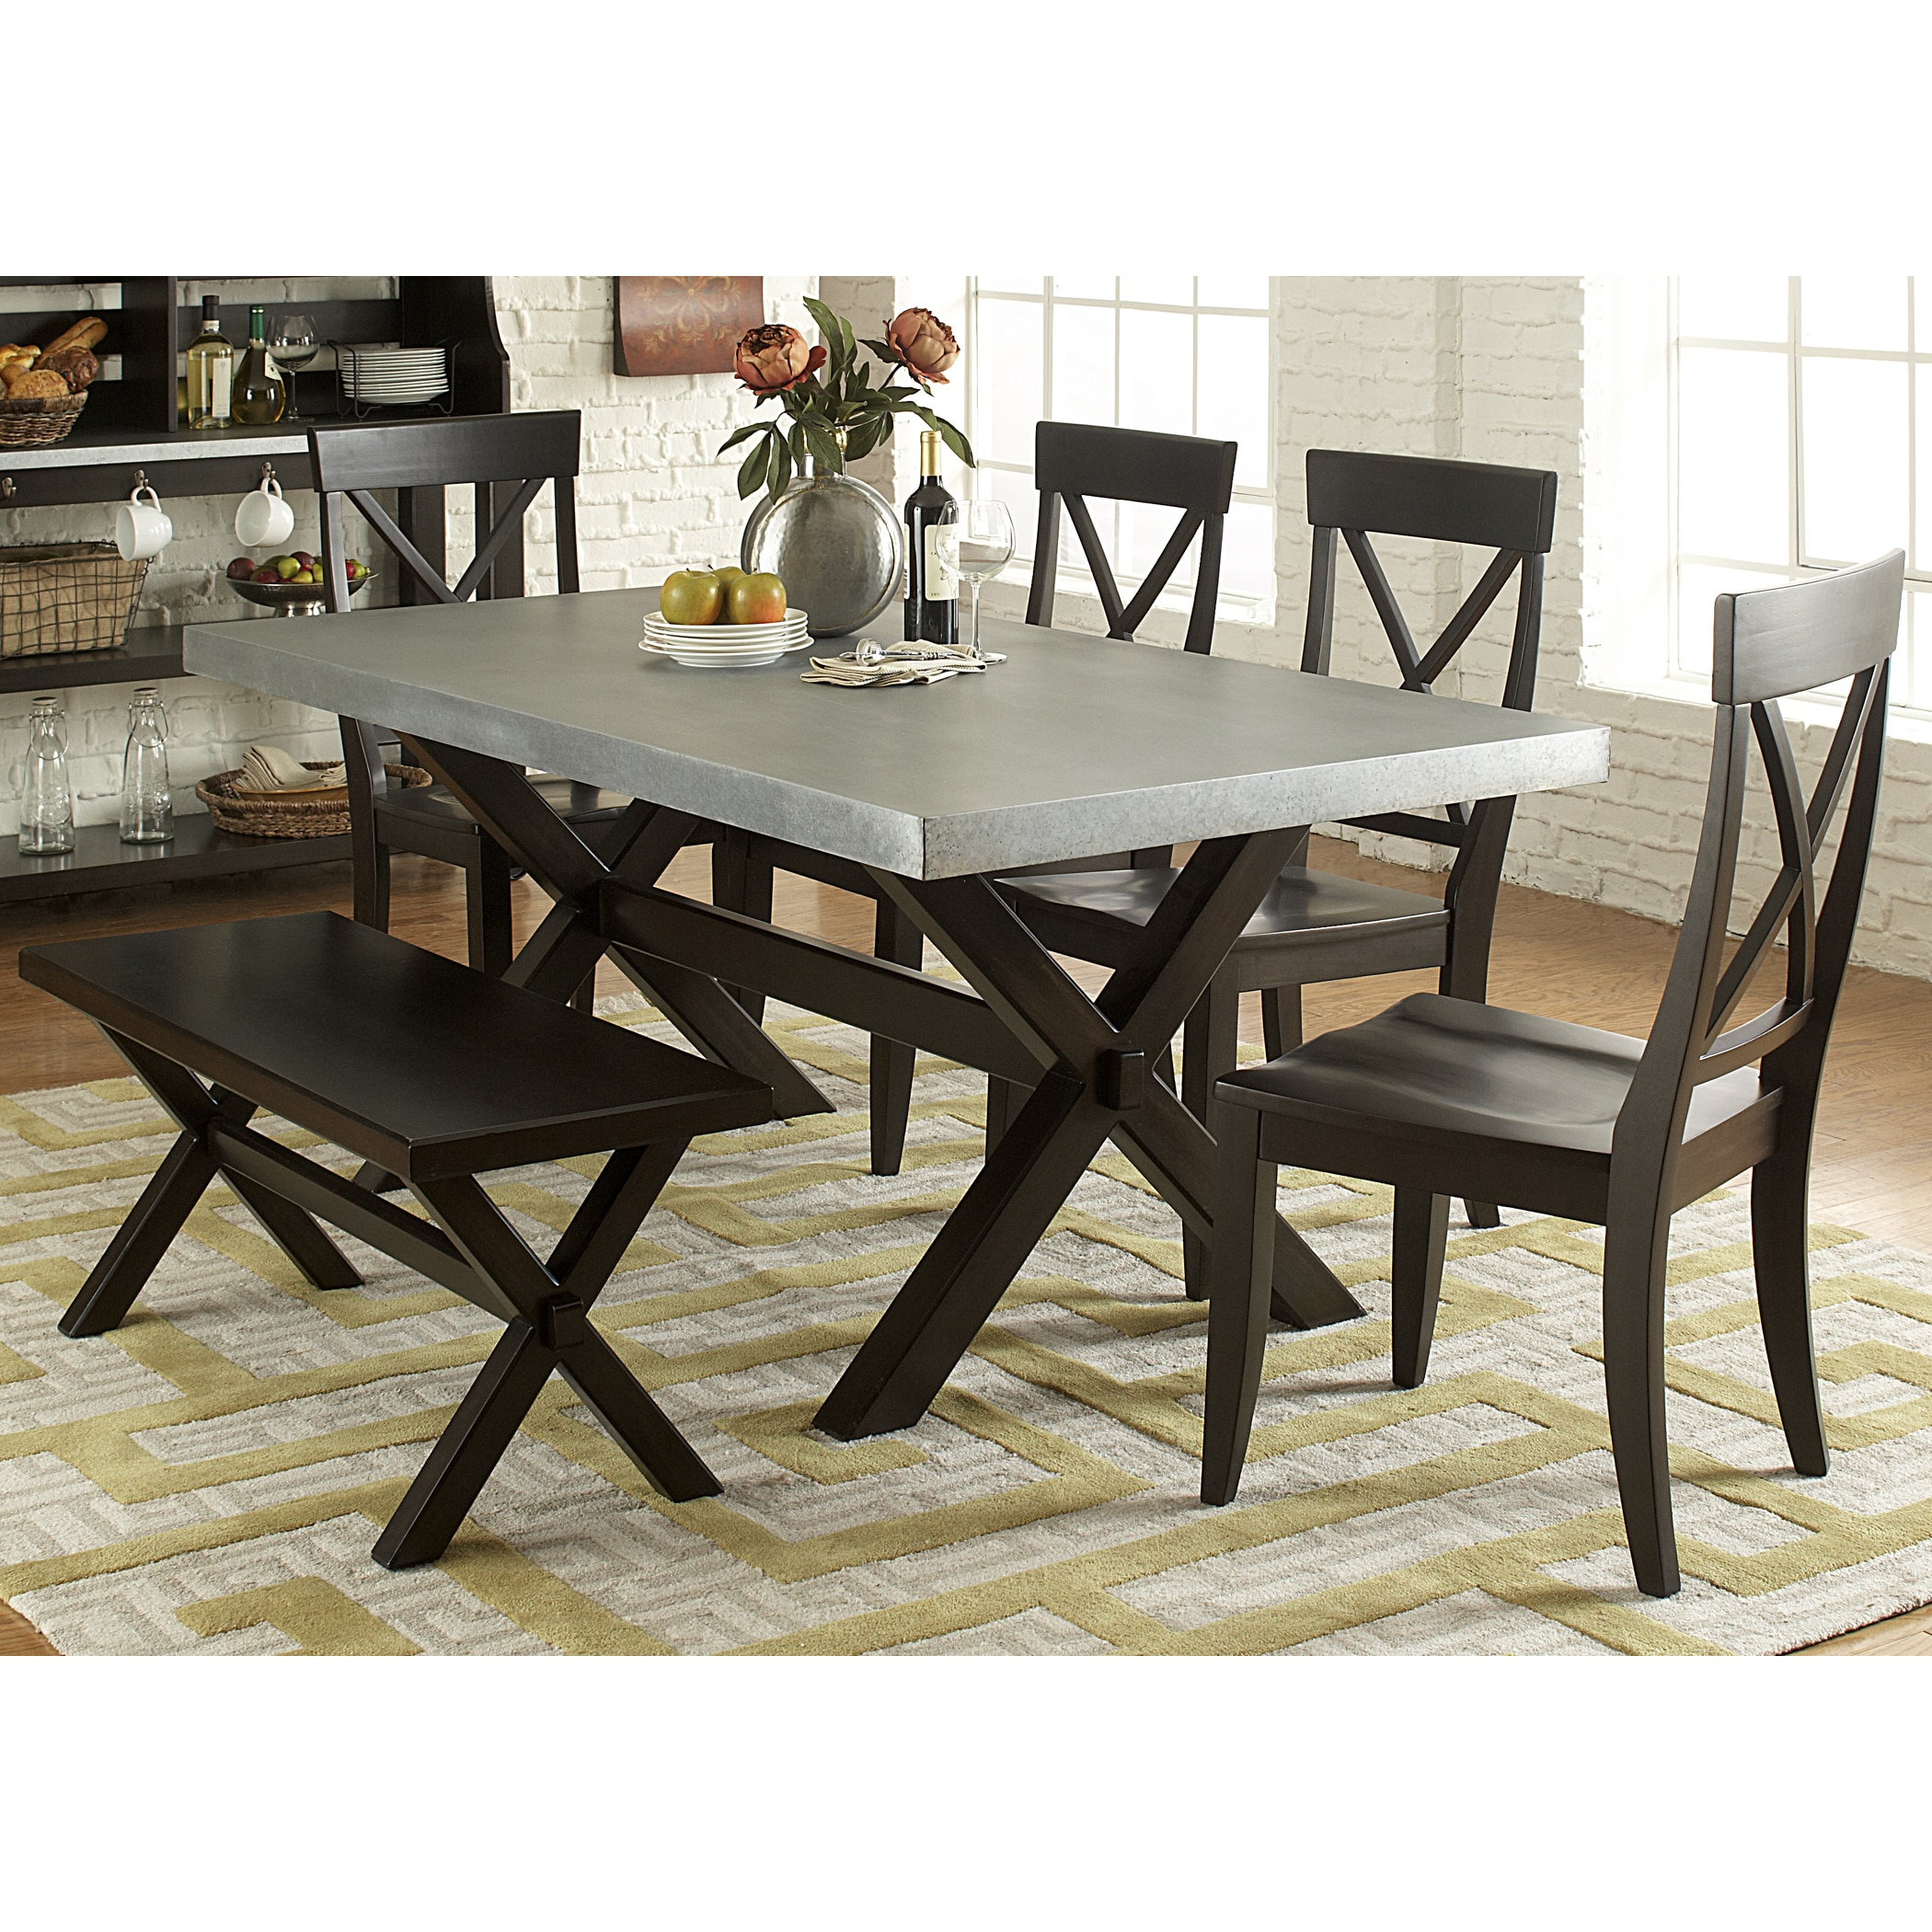 Shop Keaton Charcoal And Zinc Top Trestle Dinette Table